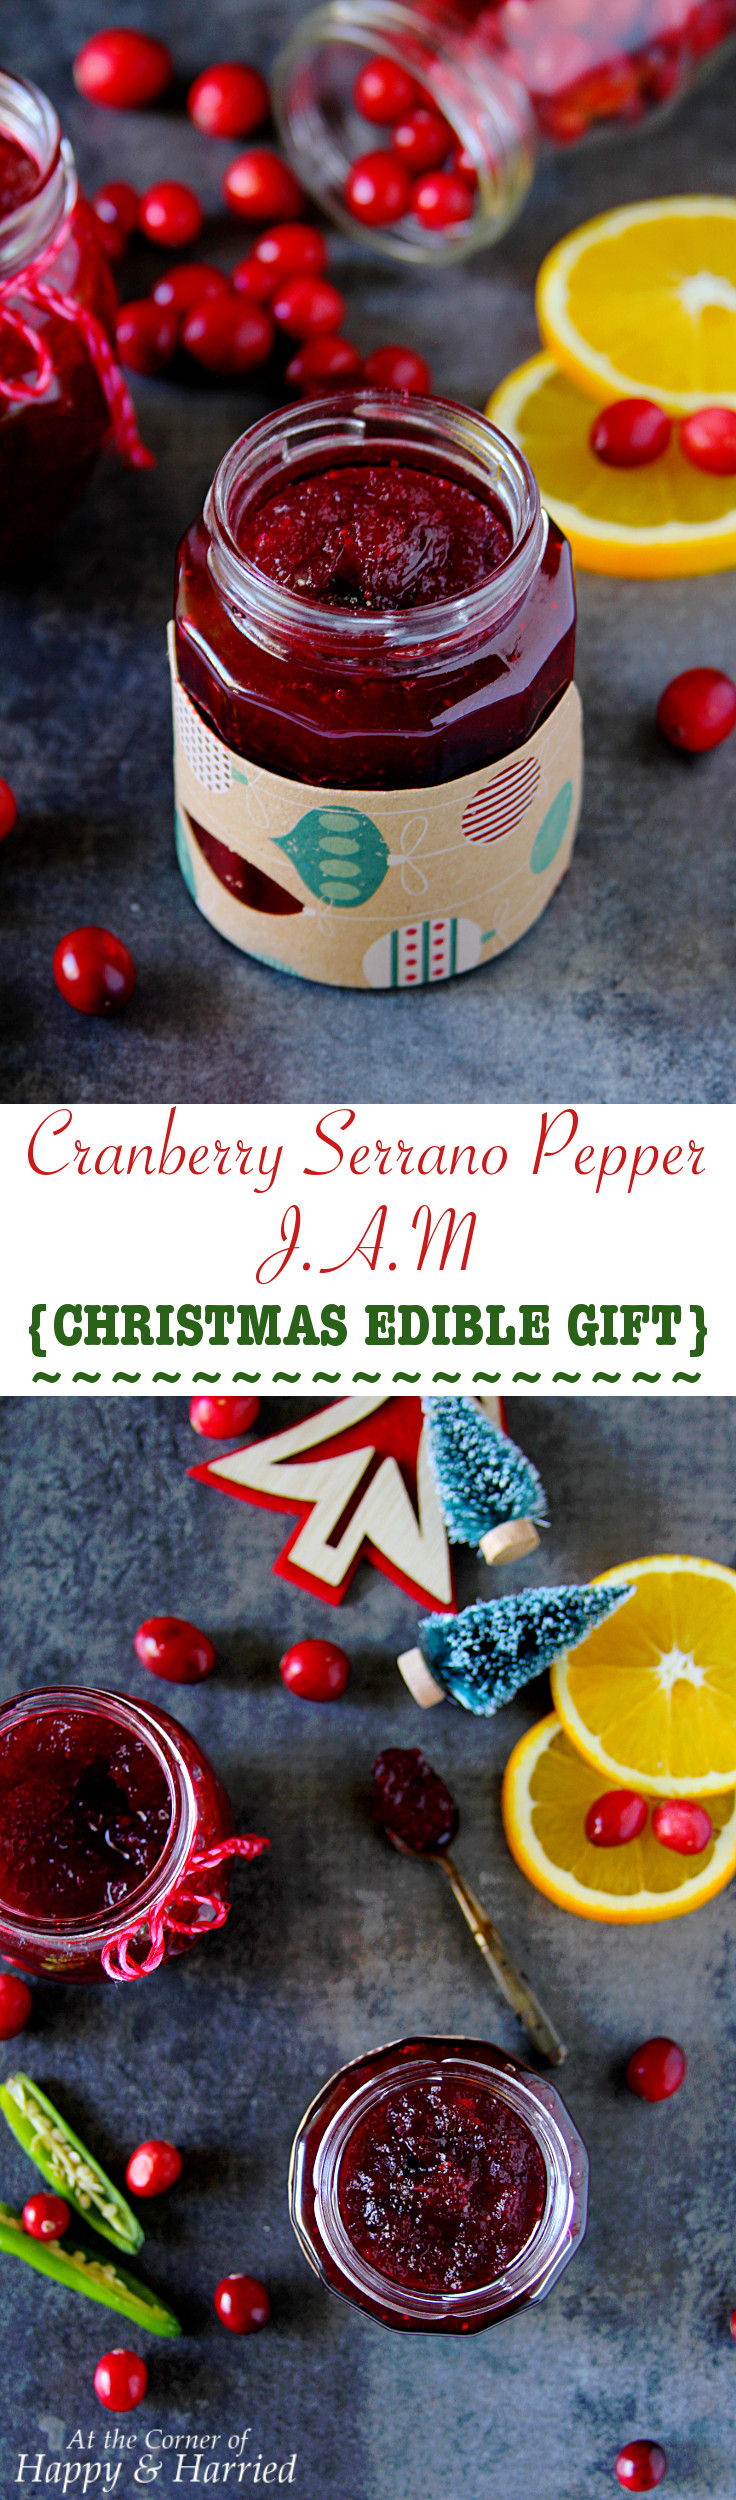 Cranberry Serrano Pepper Jam {Christmas Edible Gift}